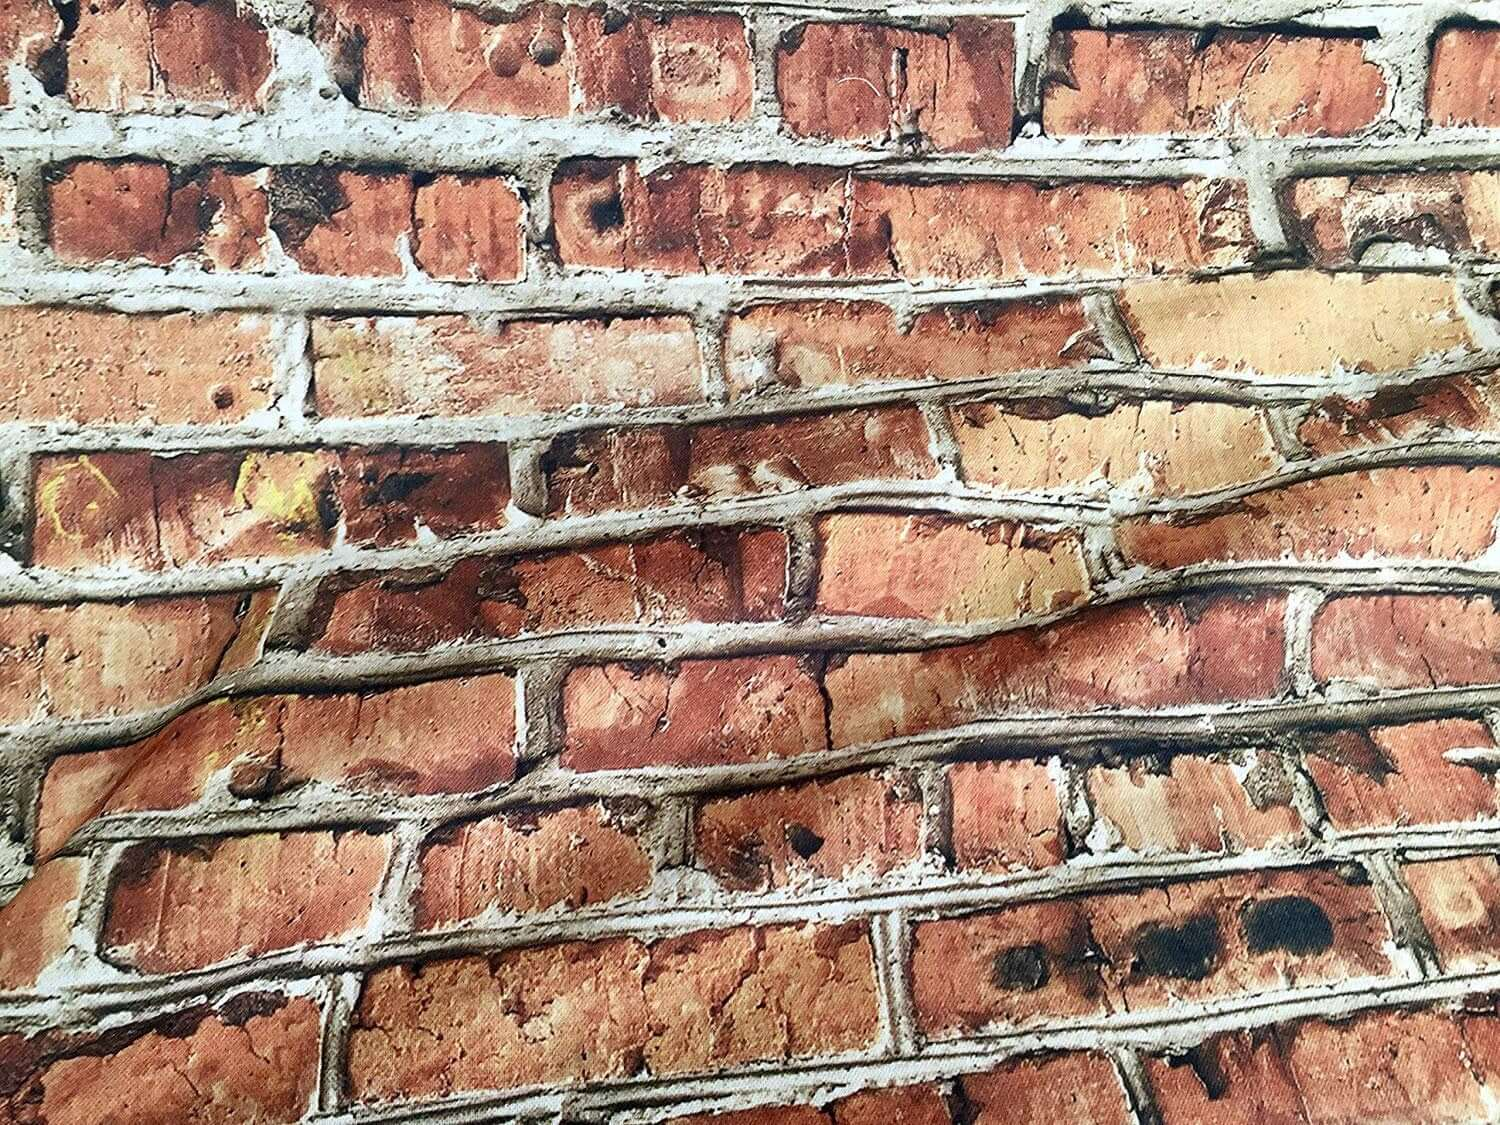 brick-wall-effect-cotton-fabric-red-bricks-stone-wall-print-cloth-material-harry-potter-9-3-4-platform-backdrop-280cm-extra-wide-5e0f2c1b1.jpg